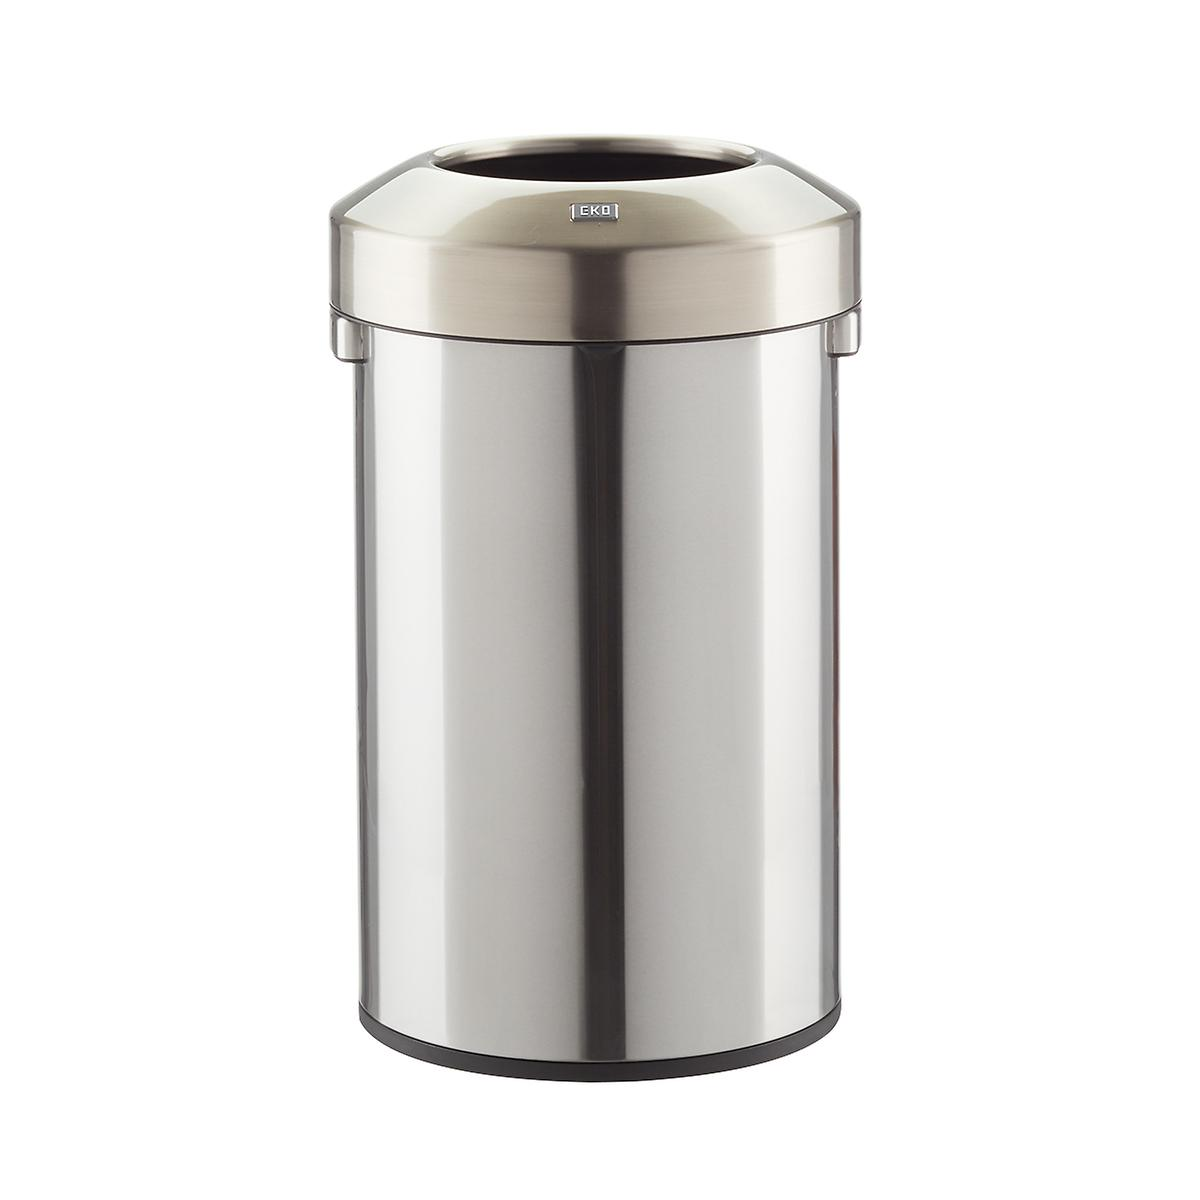 Stainless Steel 23.7 gal./90L Open-Top Commercial Can